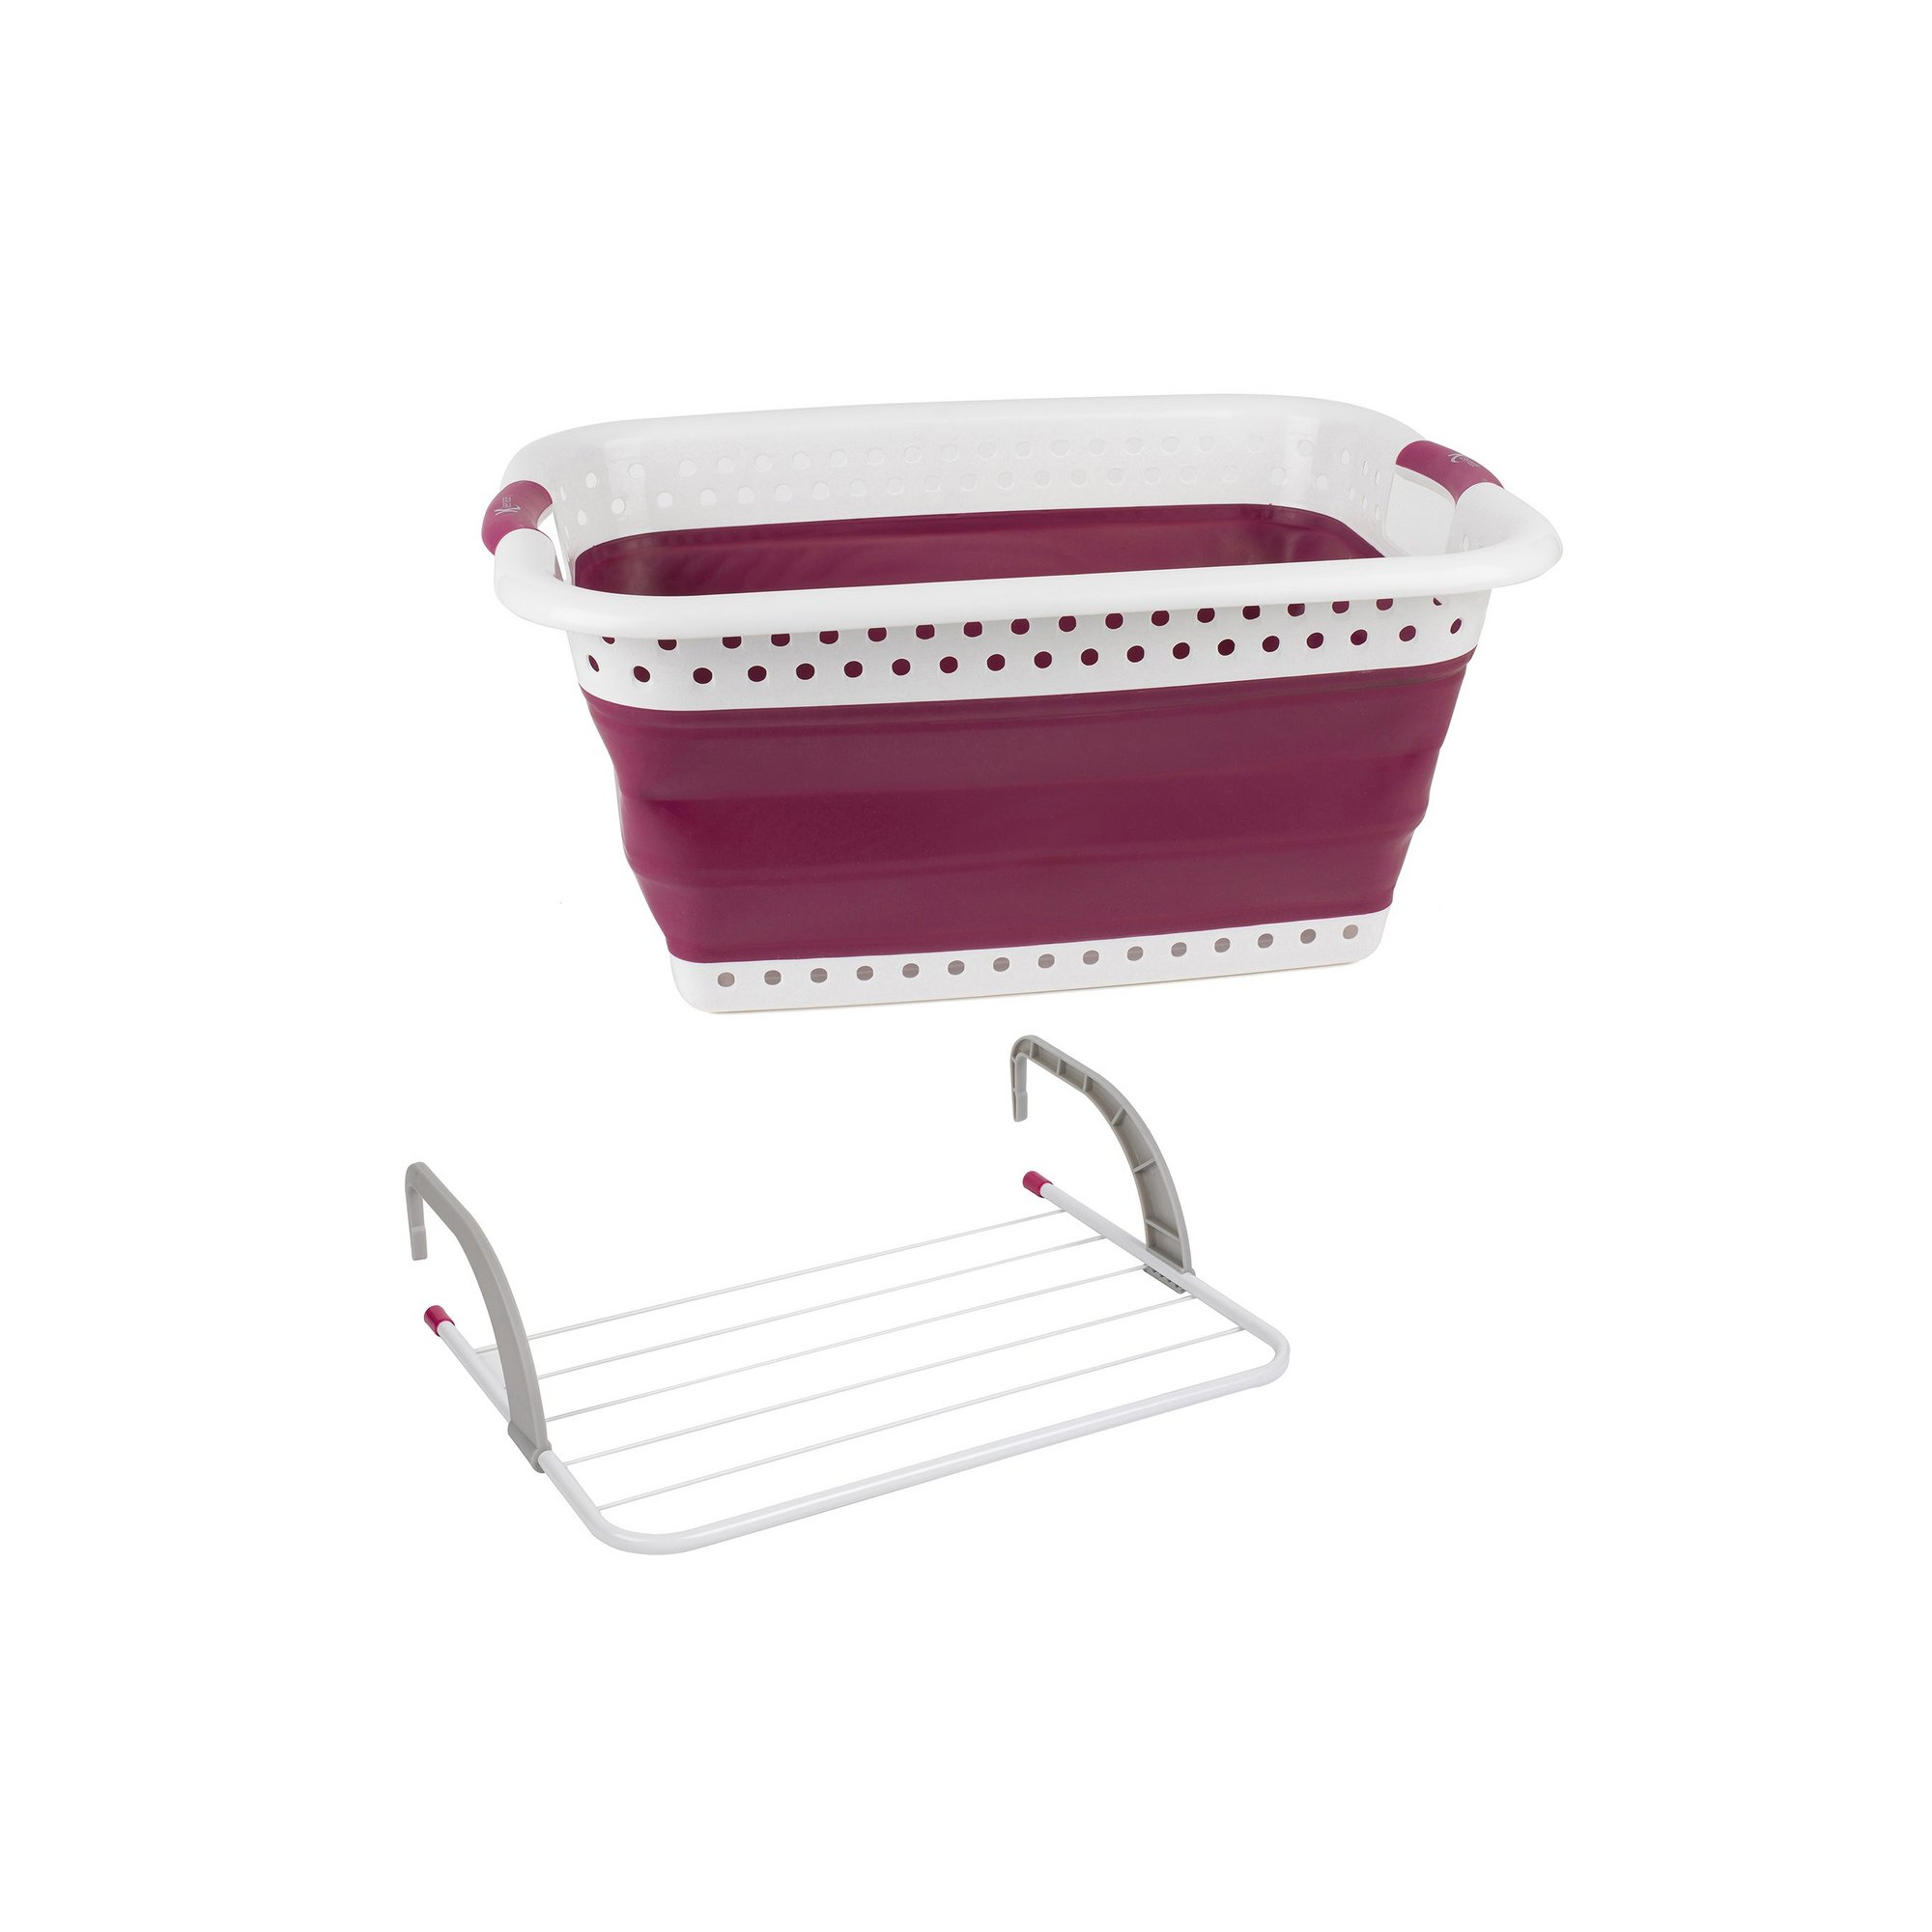 Image of Kleeneze Collapsible Laundry Basket and Radiator Airer